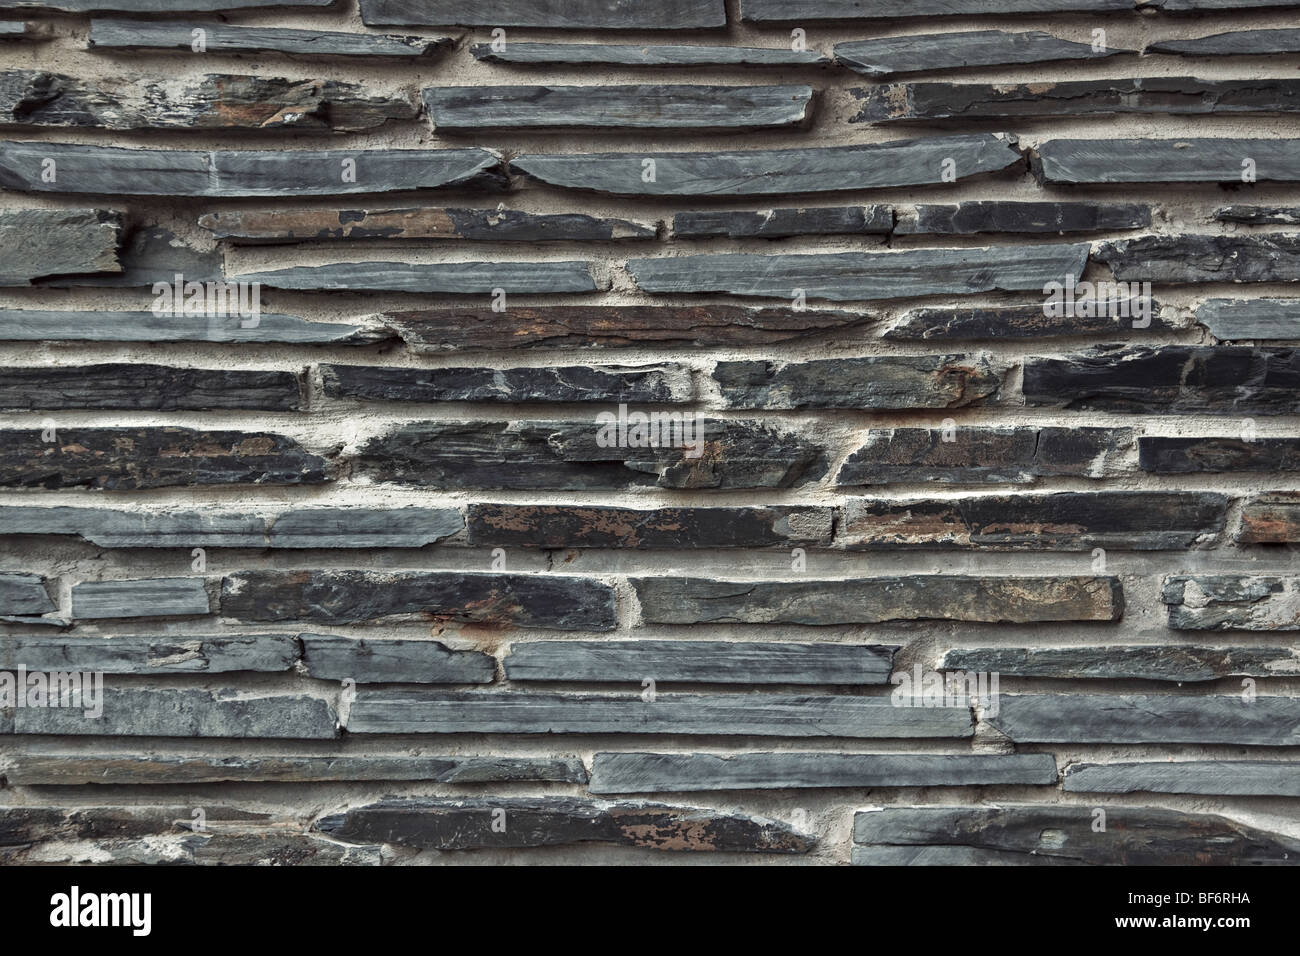 Stone wall texture or background. - Stock Image